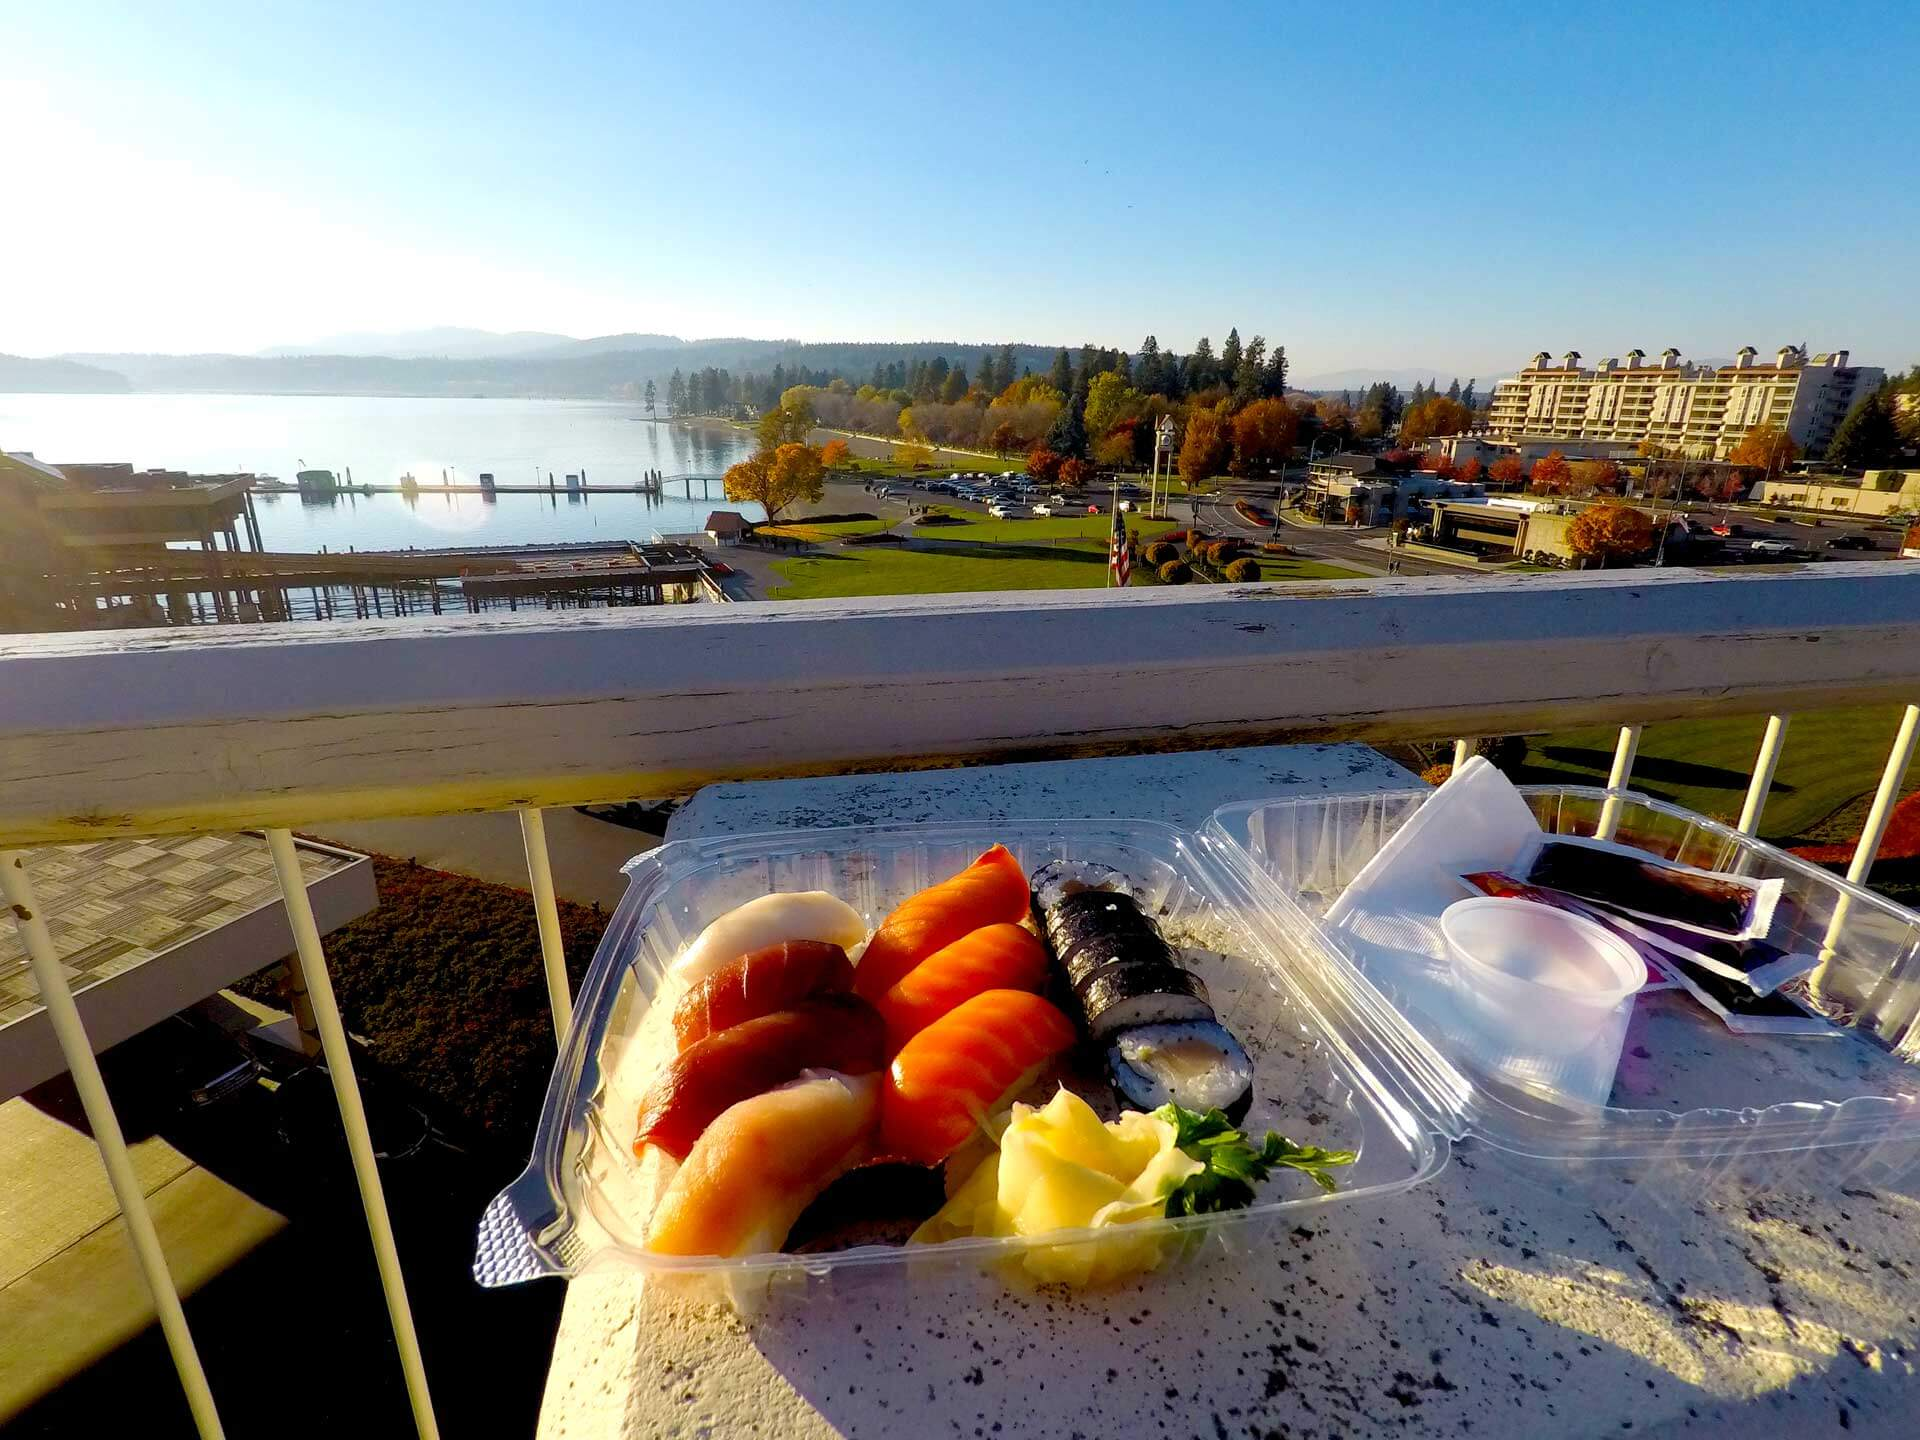 Eat your sushi wherever you want. Even take it downtown Coeur d'Alene and eat it at Tubbs Hill.